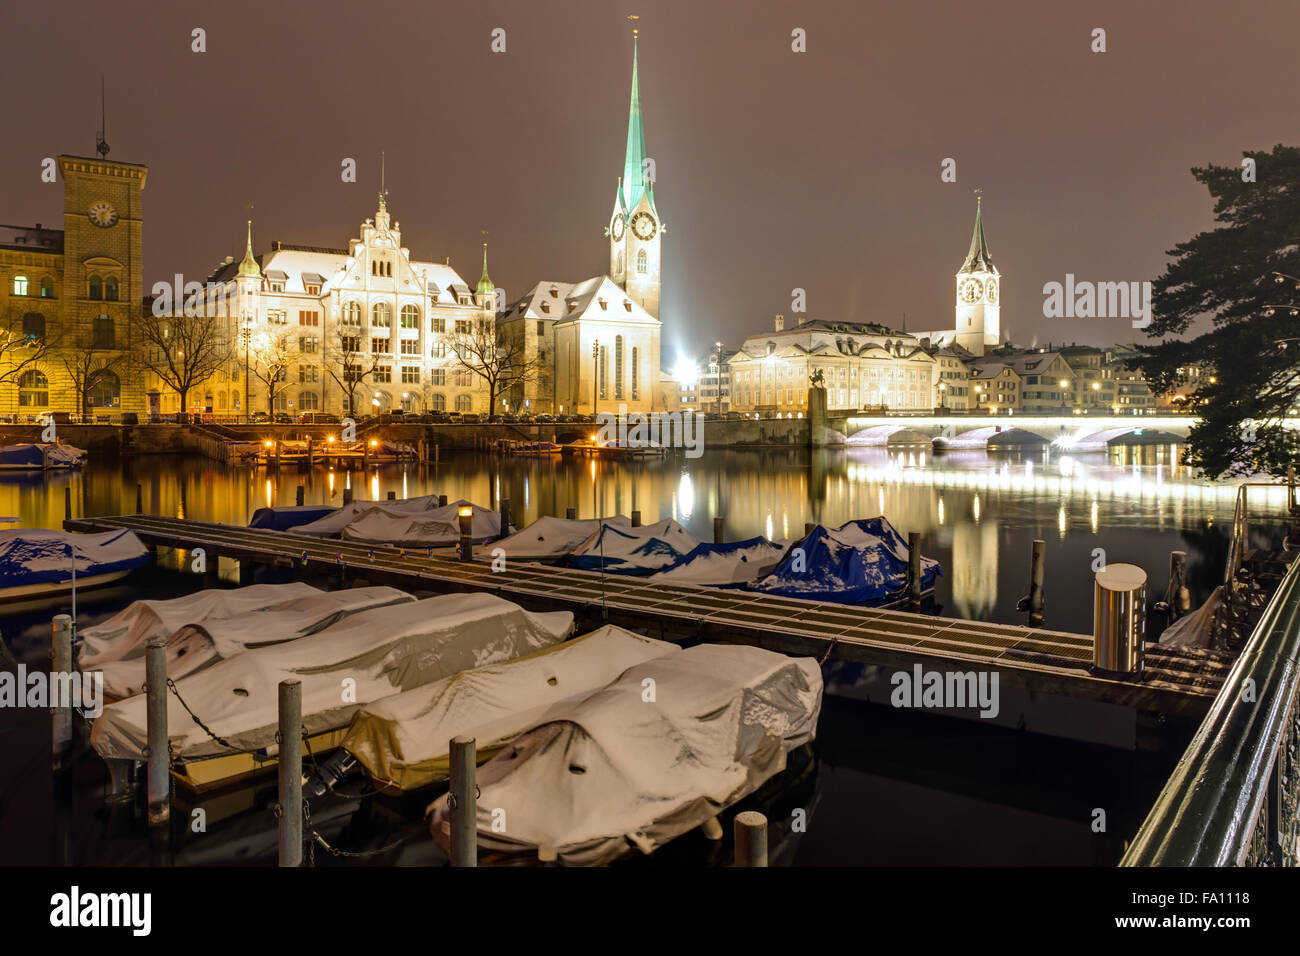 Zurich and the Limmat river on a winter night - Stock Image